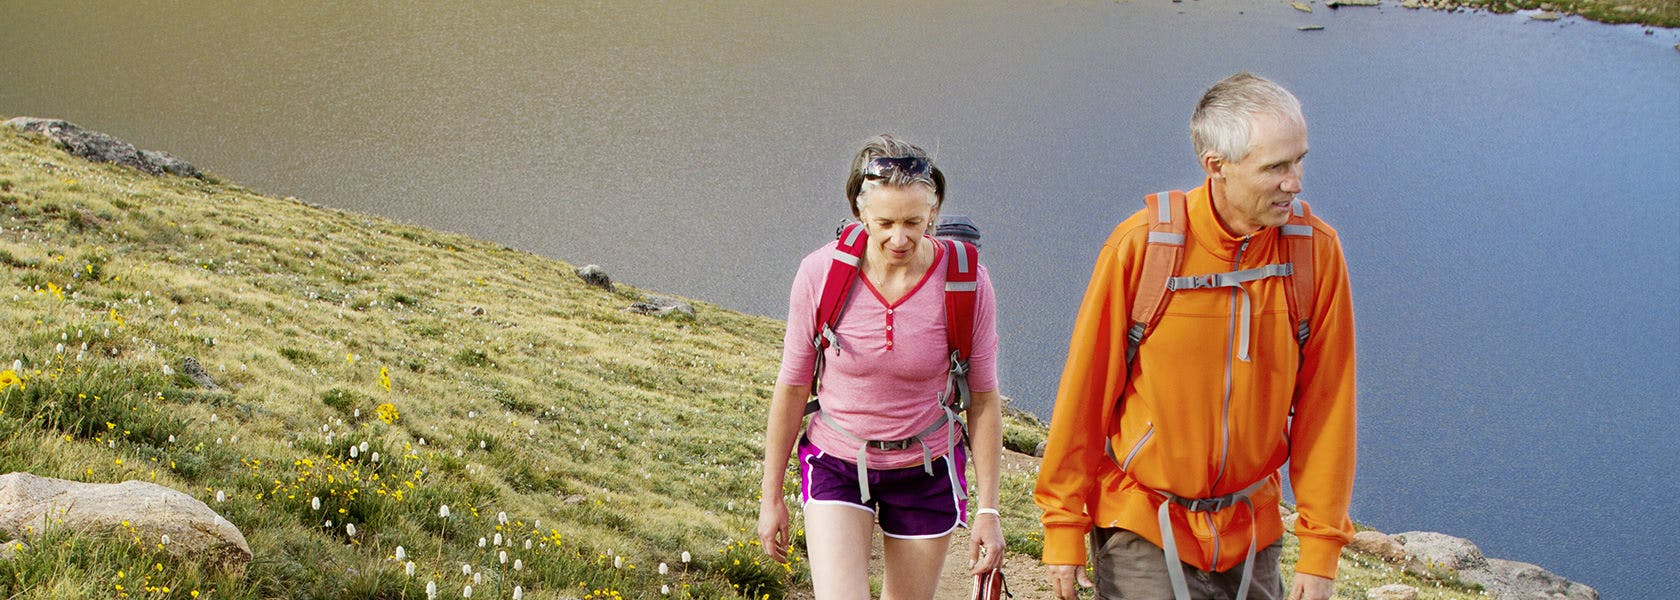 A Couple Hikes Uphill